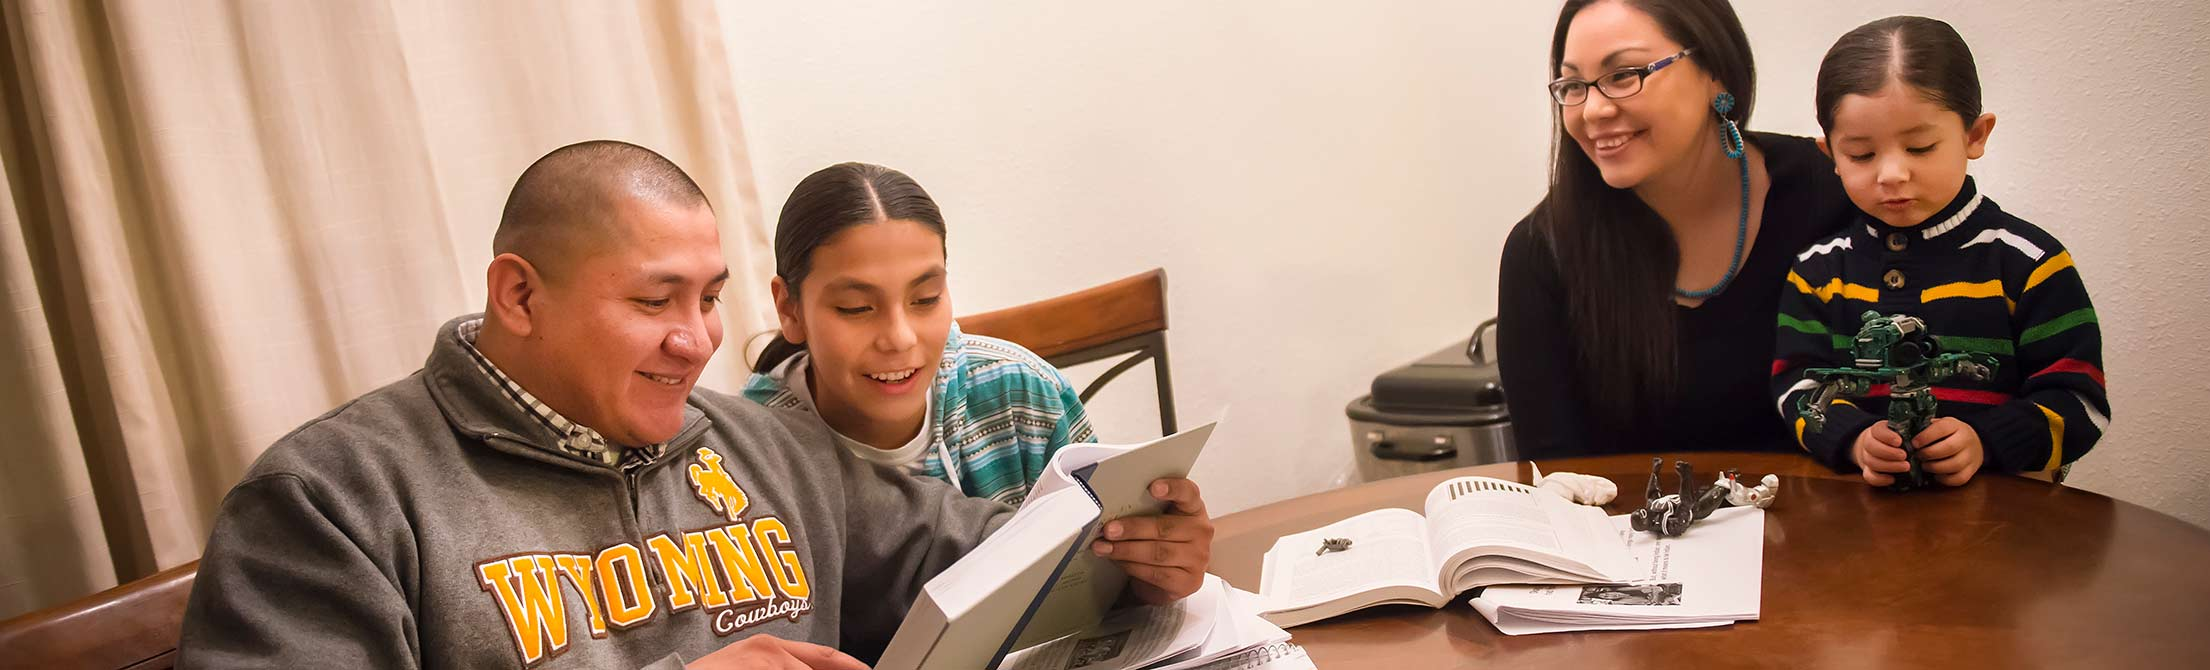 UW Student reading and smiling while reading a book at home.